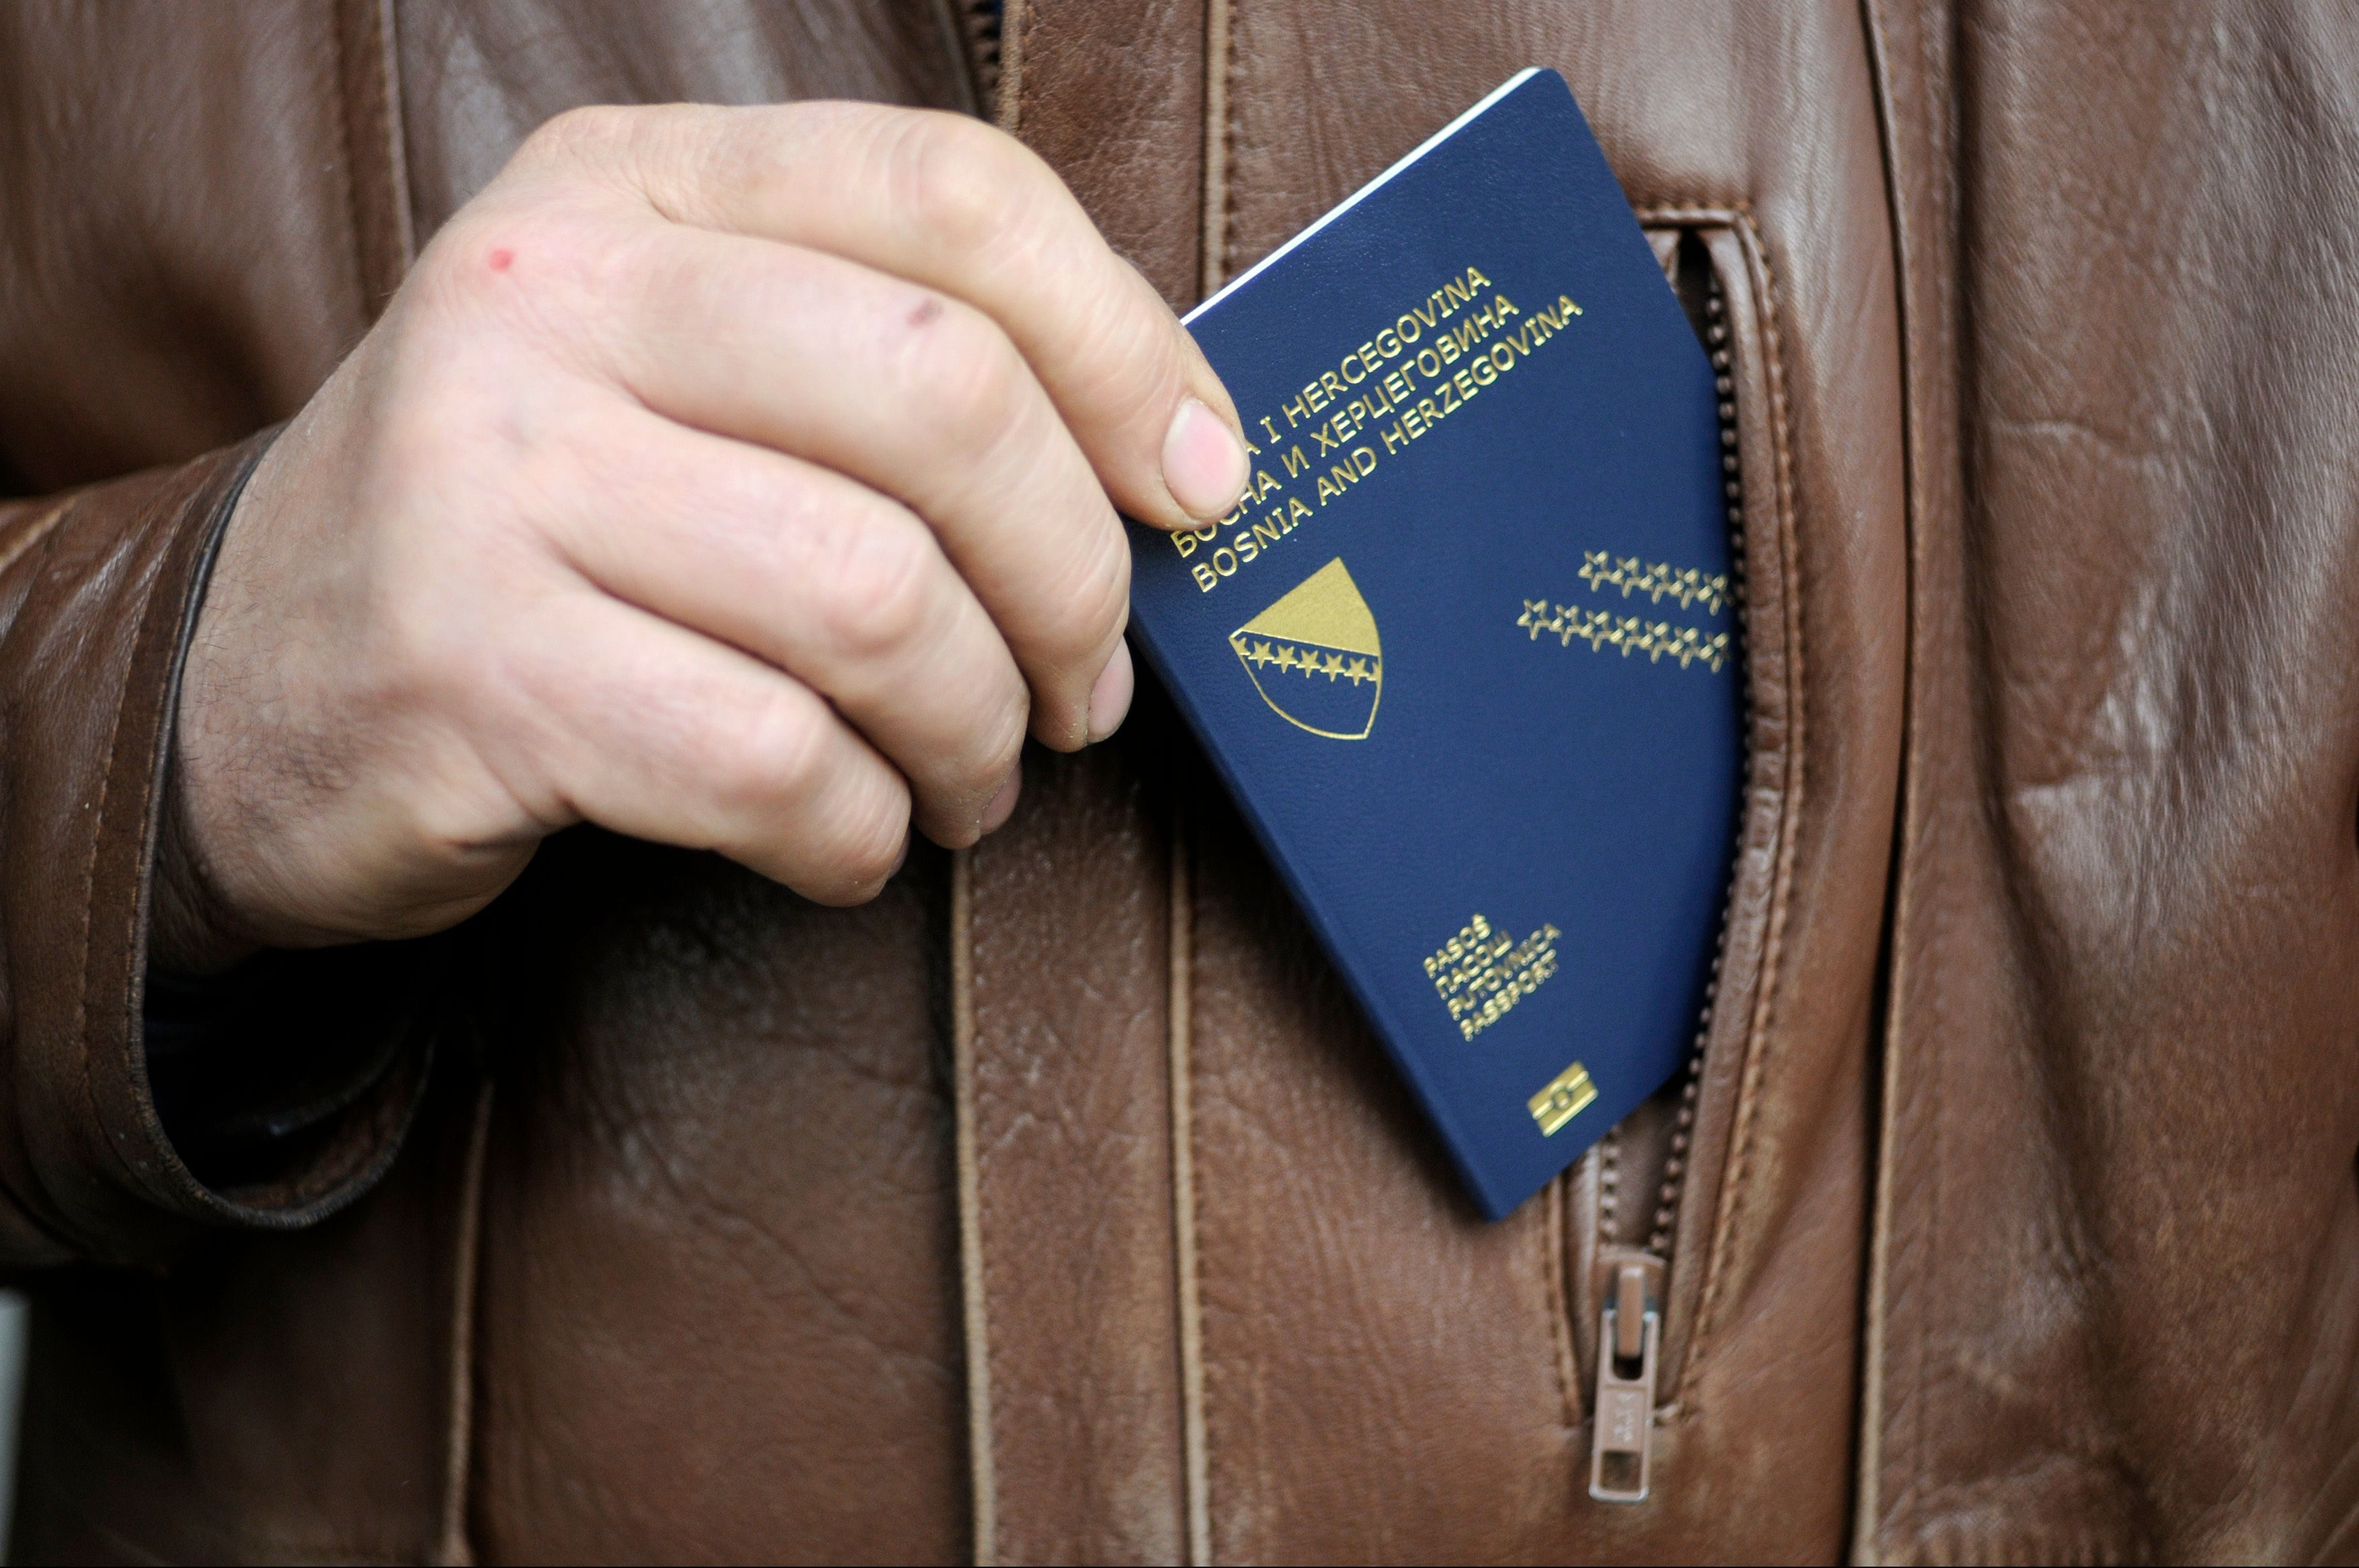 Bosnia's biometric passport outside a police station in central Bosnian town of Zenica